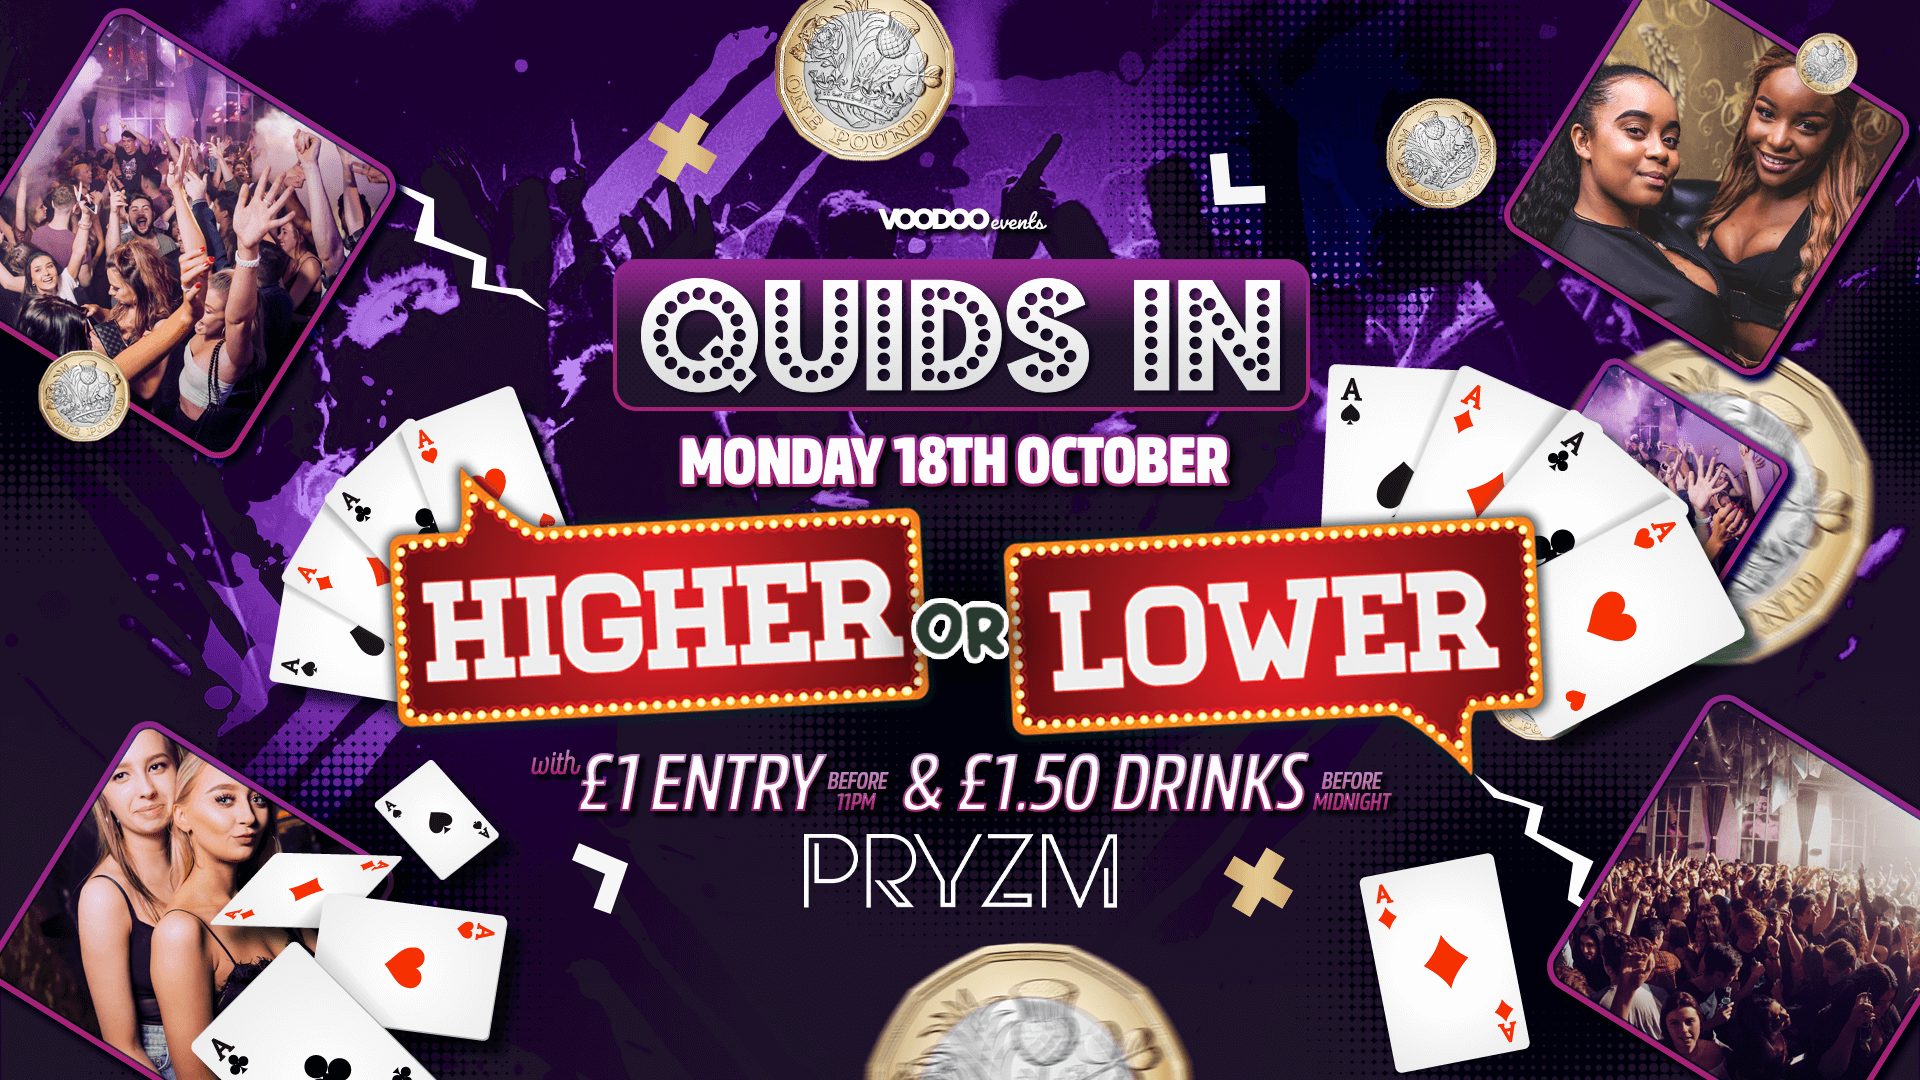 Quids In Mondays – Higher or Lower at PRYZM – 18th October